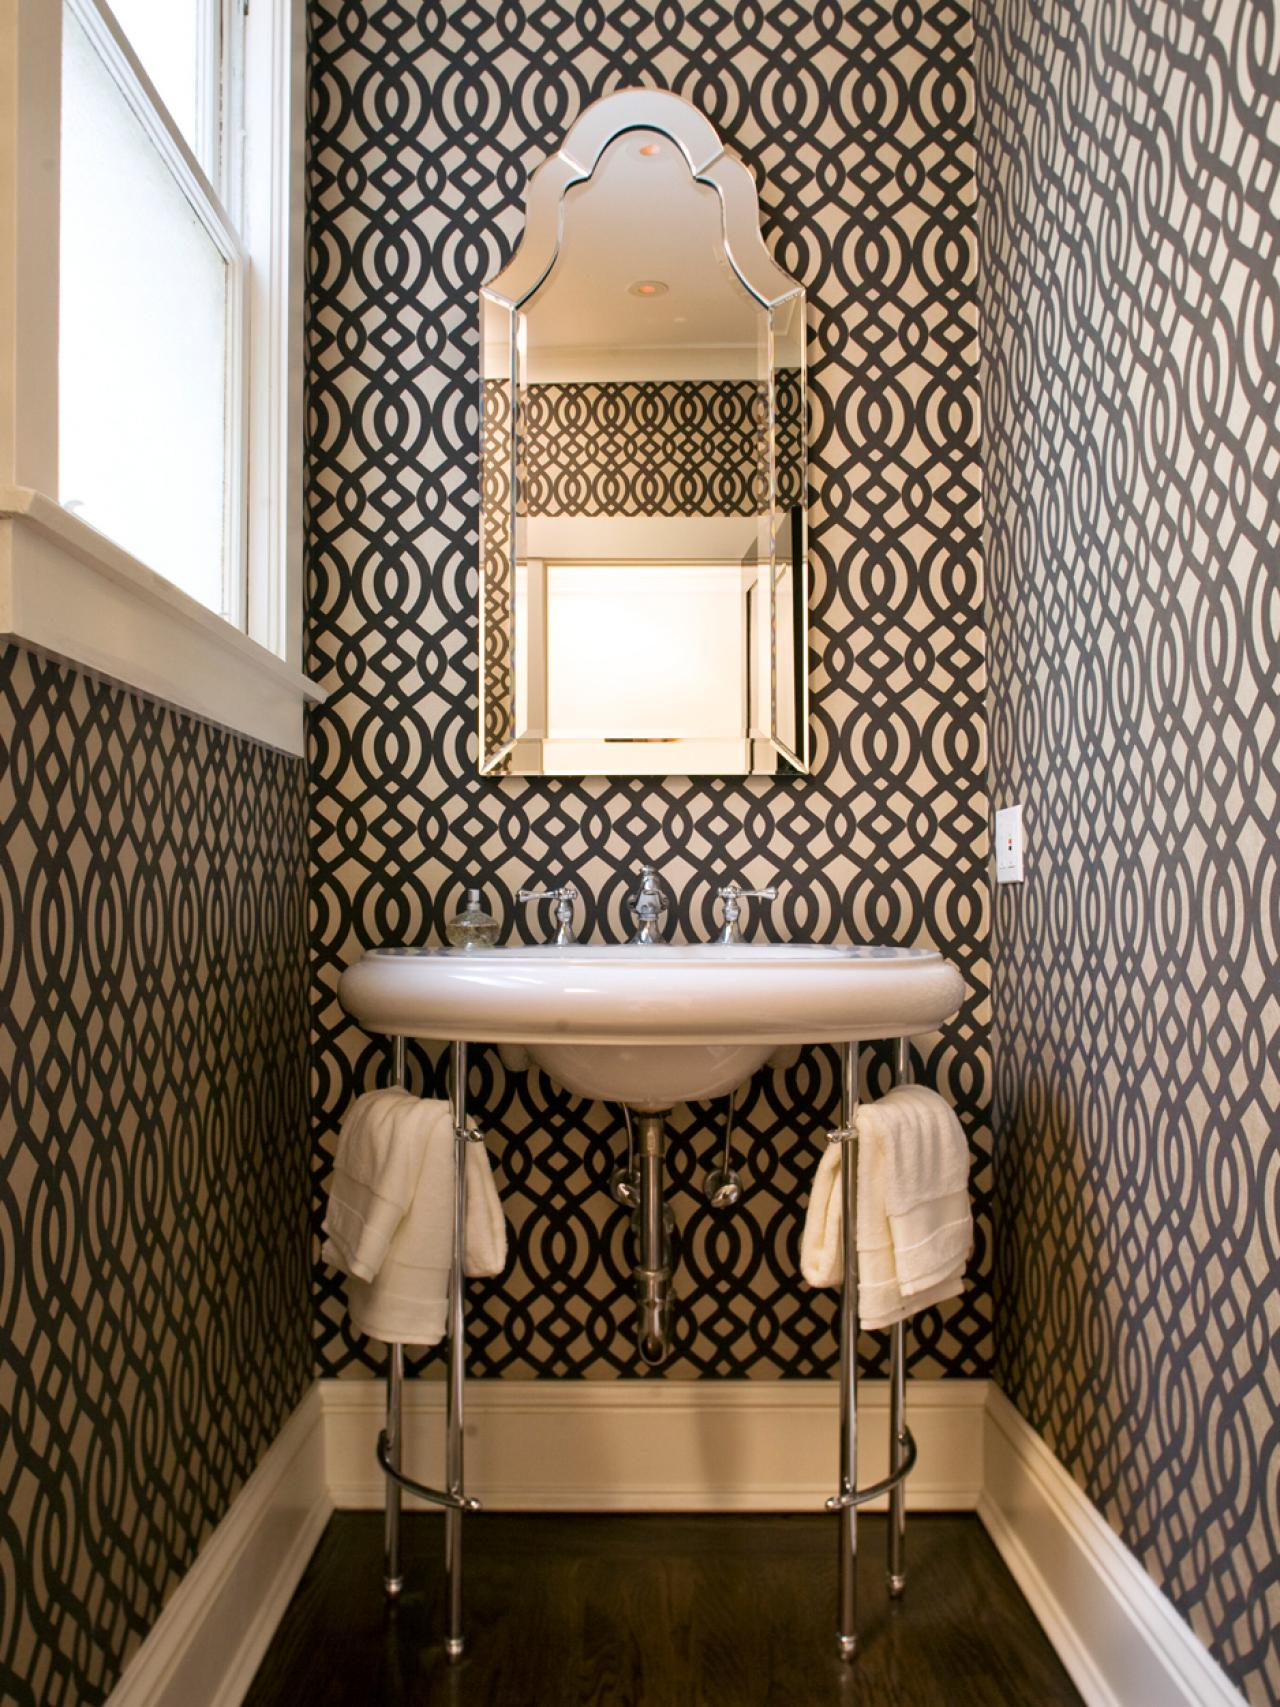 Bathroom Tile Ideas Traditional traditional bathroom designs: pictures & ideas from hgtv | hgtv